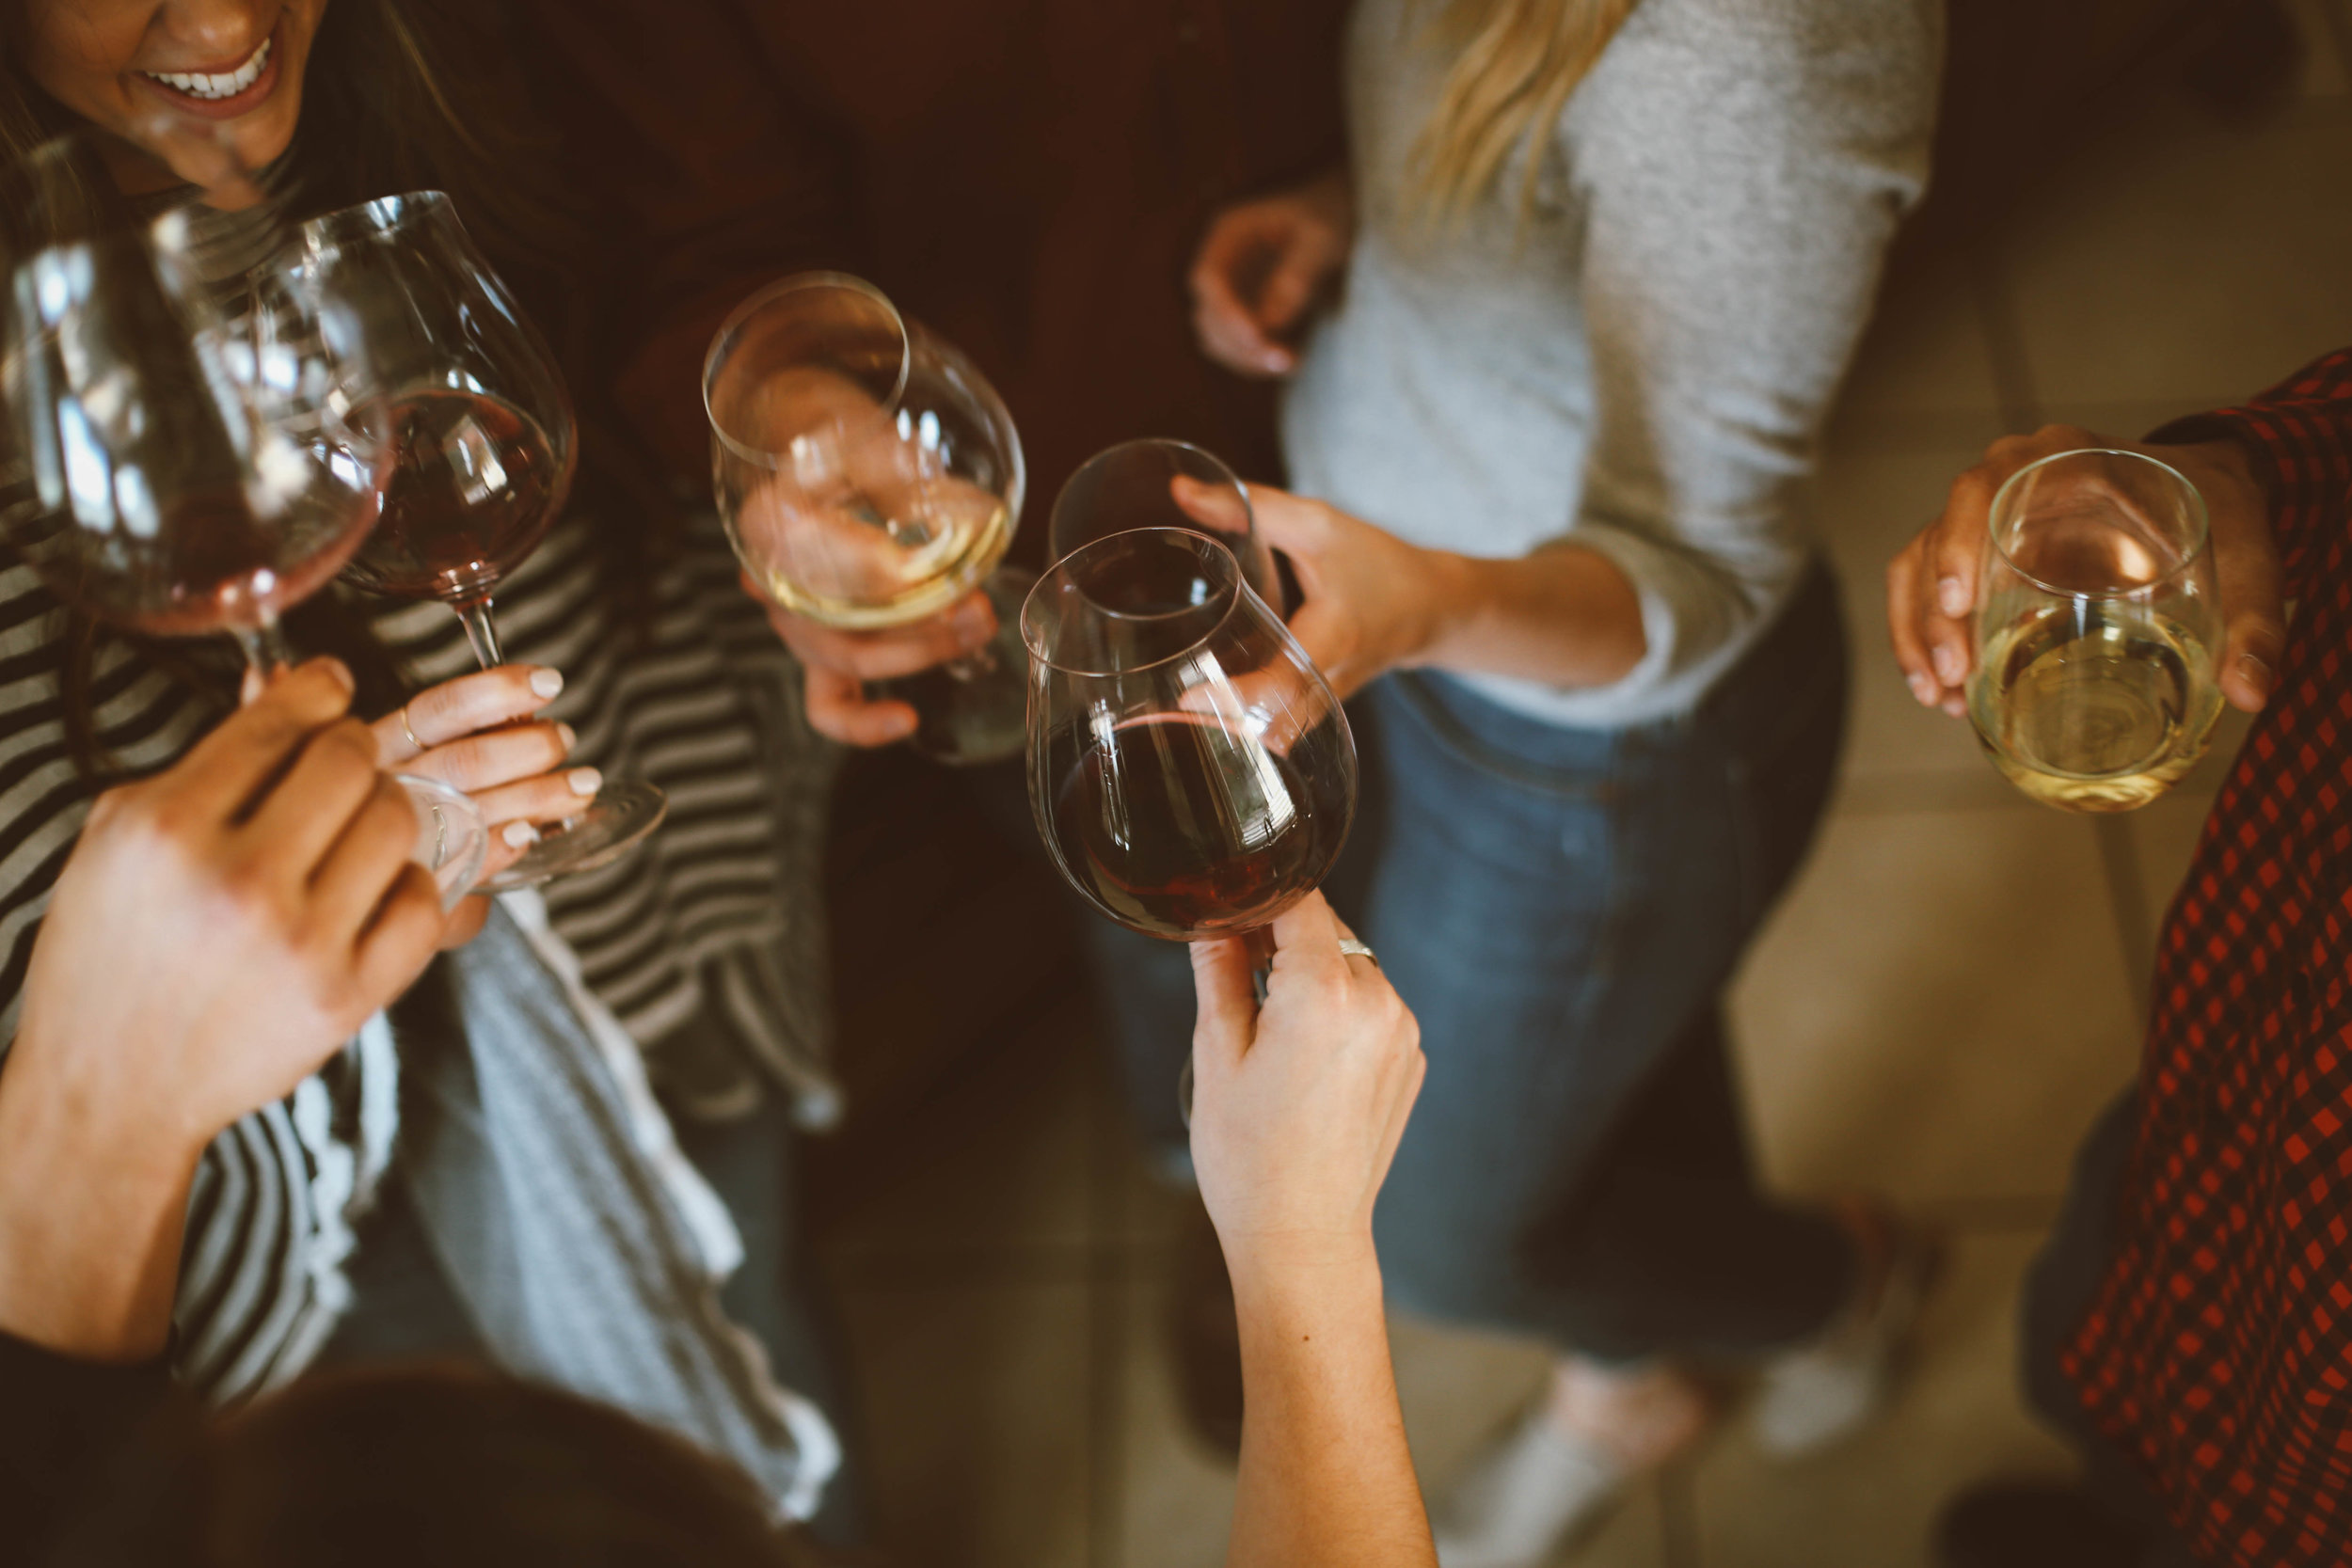 We are all about connecting people and businesses in our local community and sharing great wine! Join us for the kick-off event and be sure to drop a business card in the bowl for a chance to win a door prize.